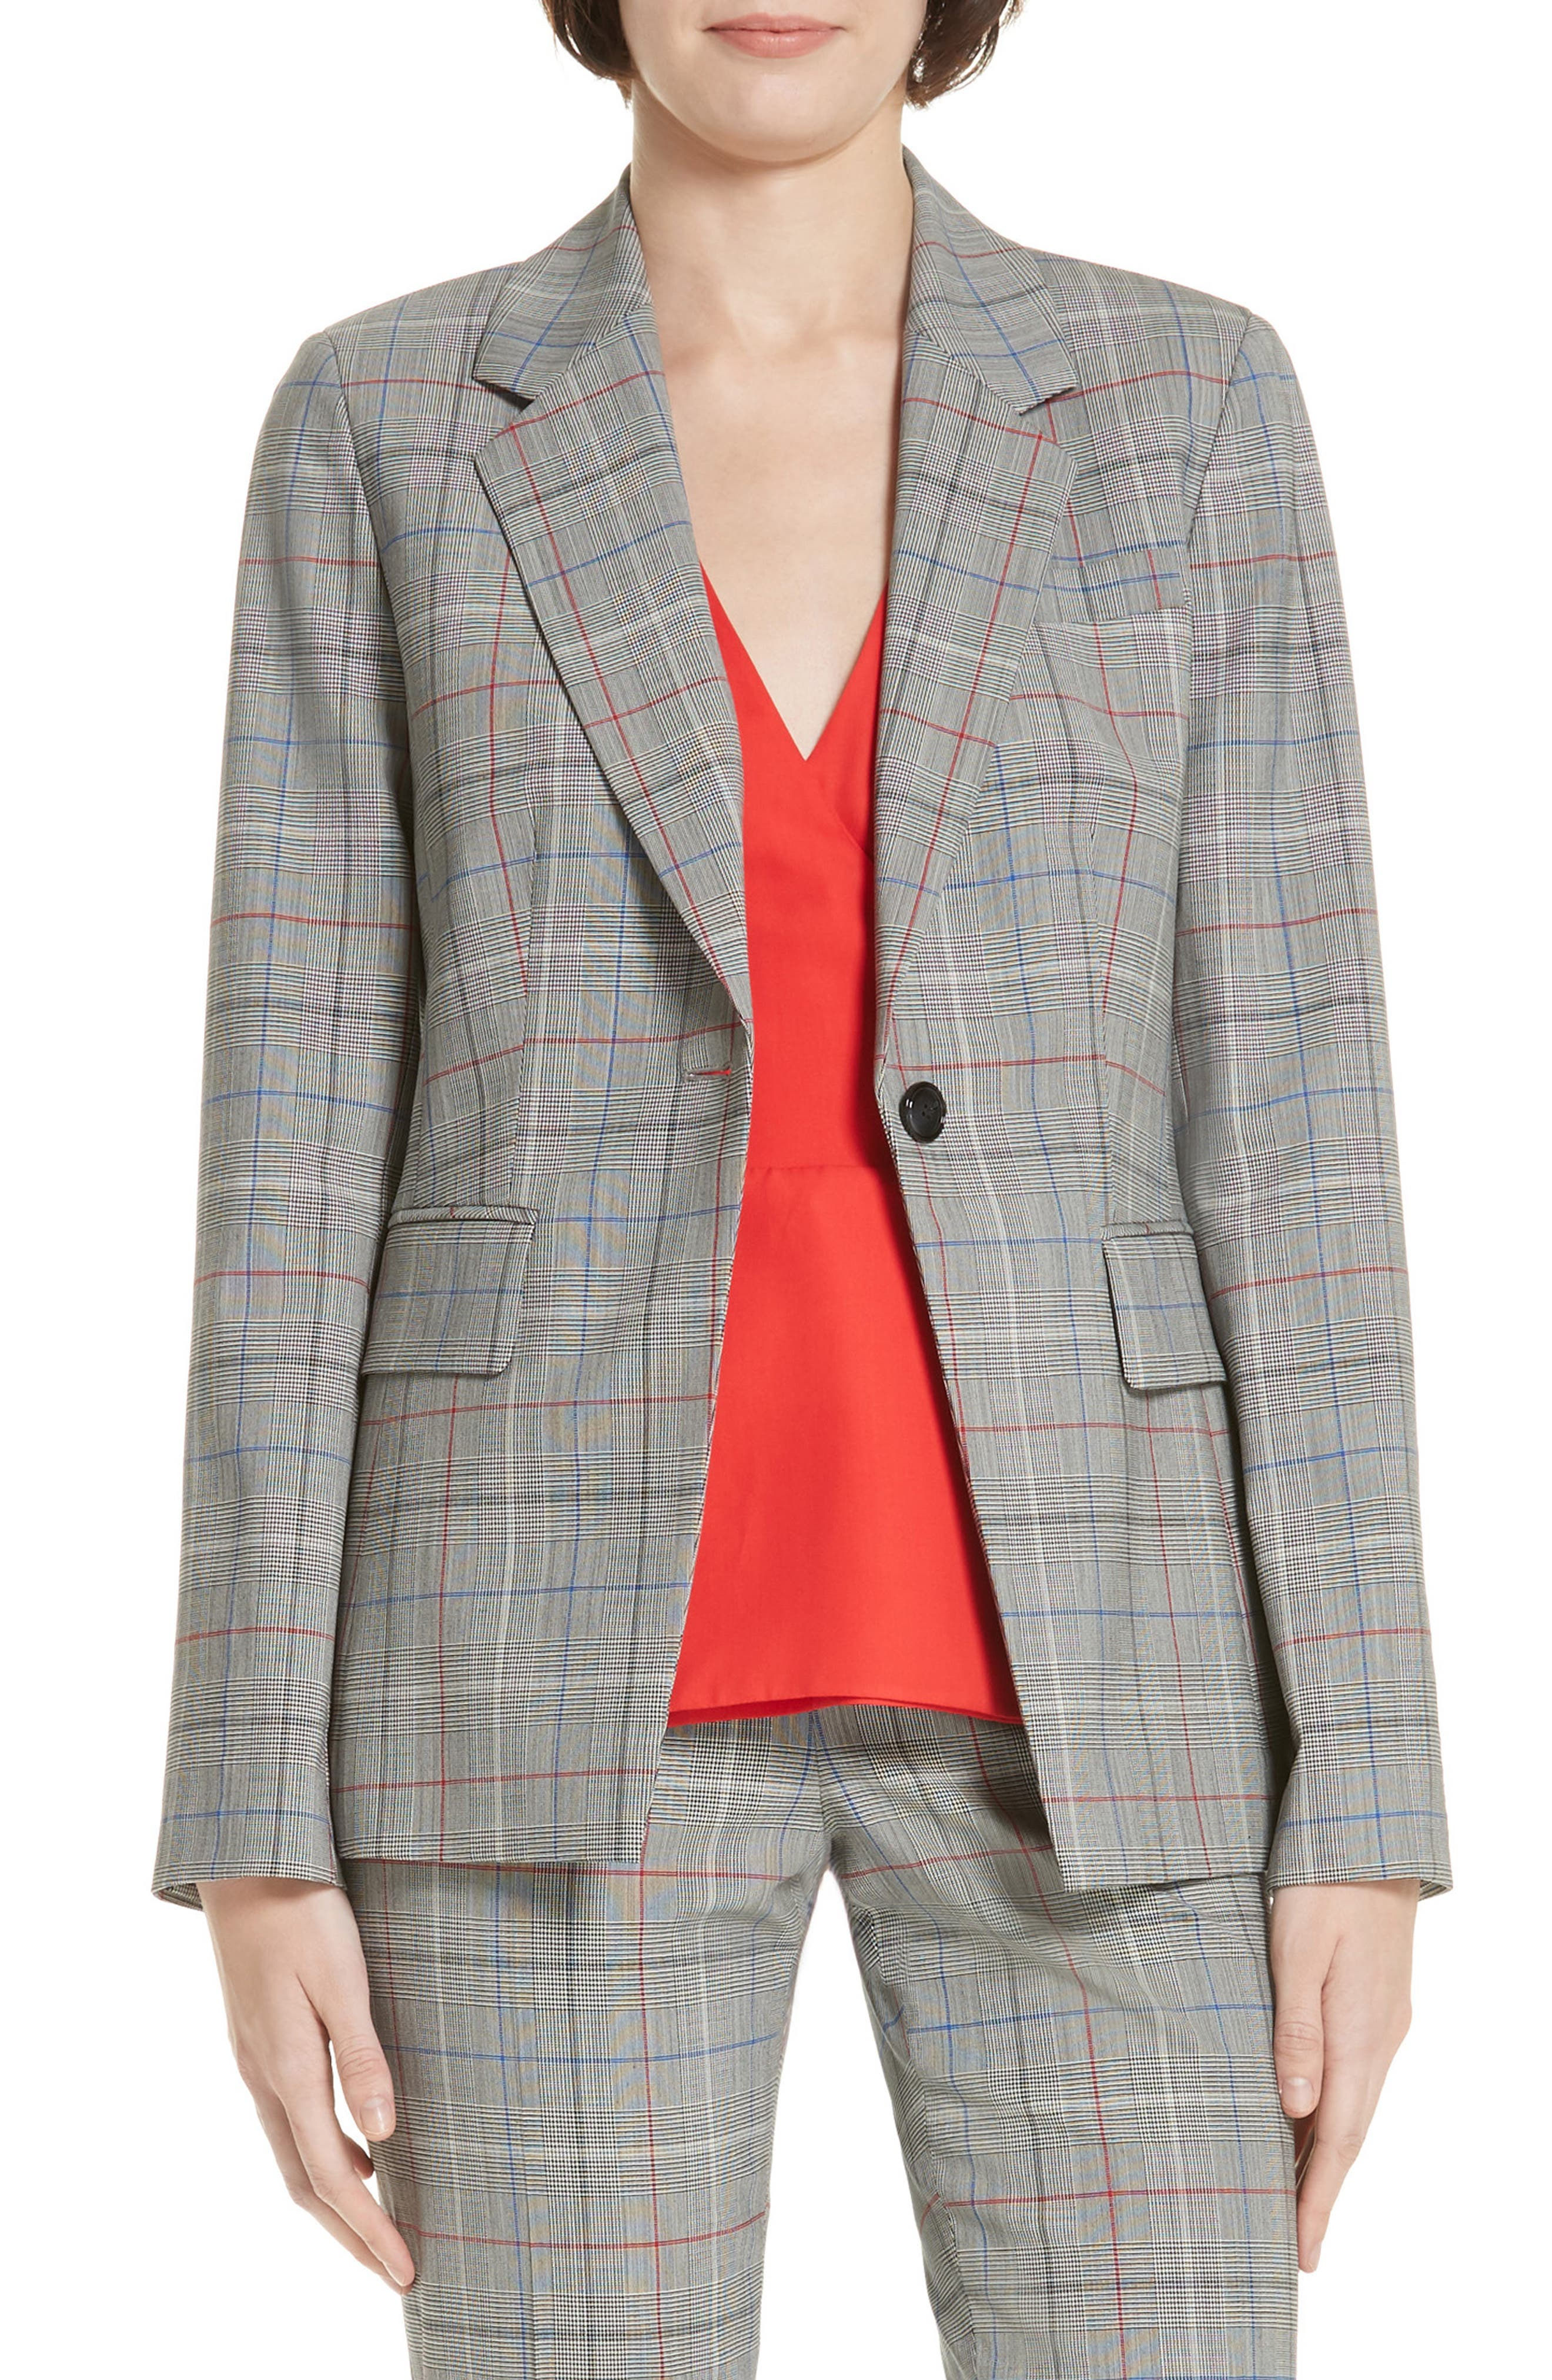 LEWIT Check Stretch Wool Blazer, Main, color, 001